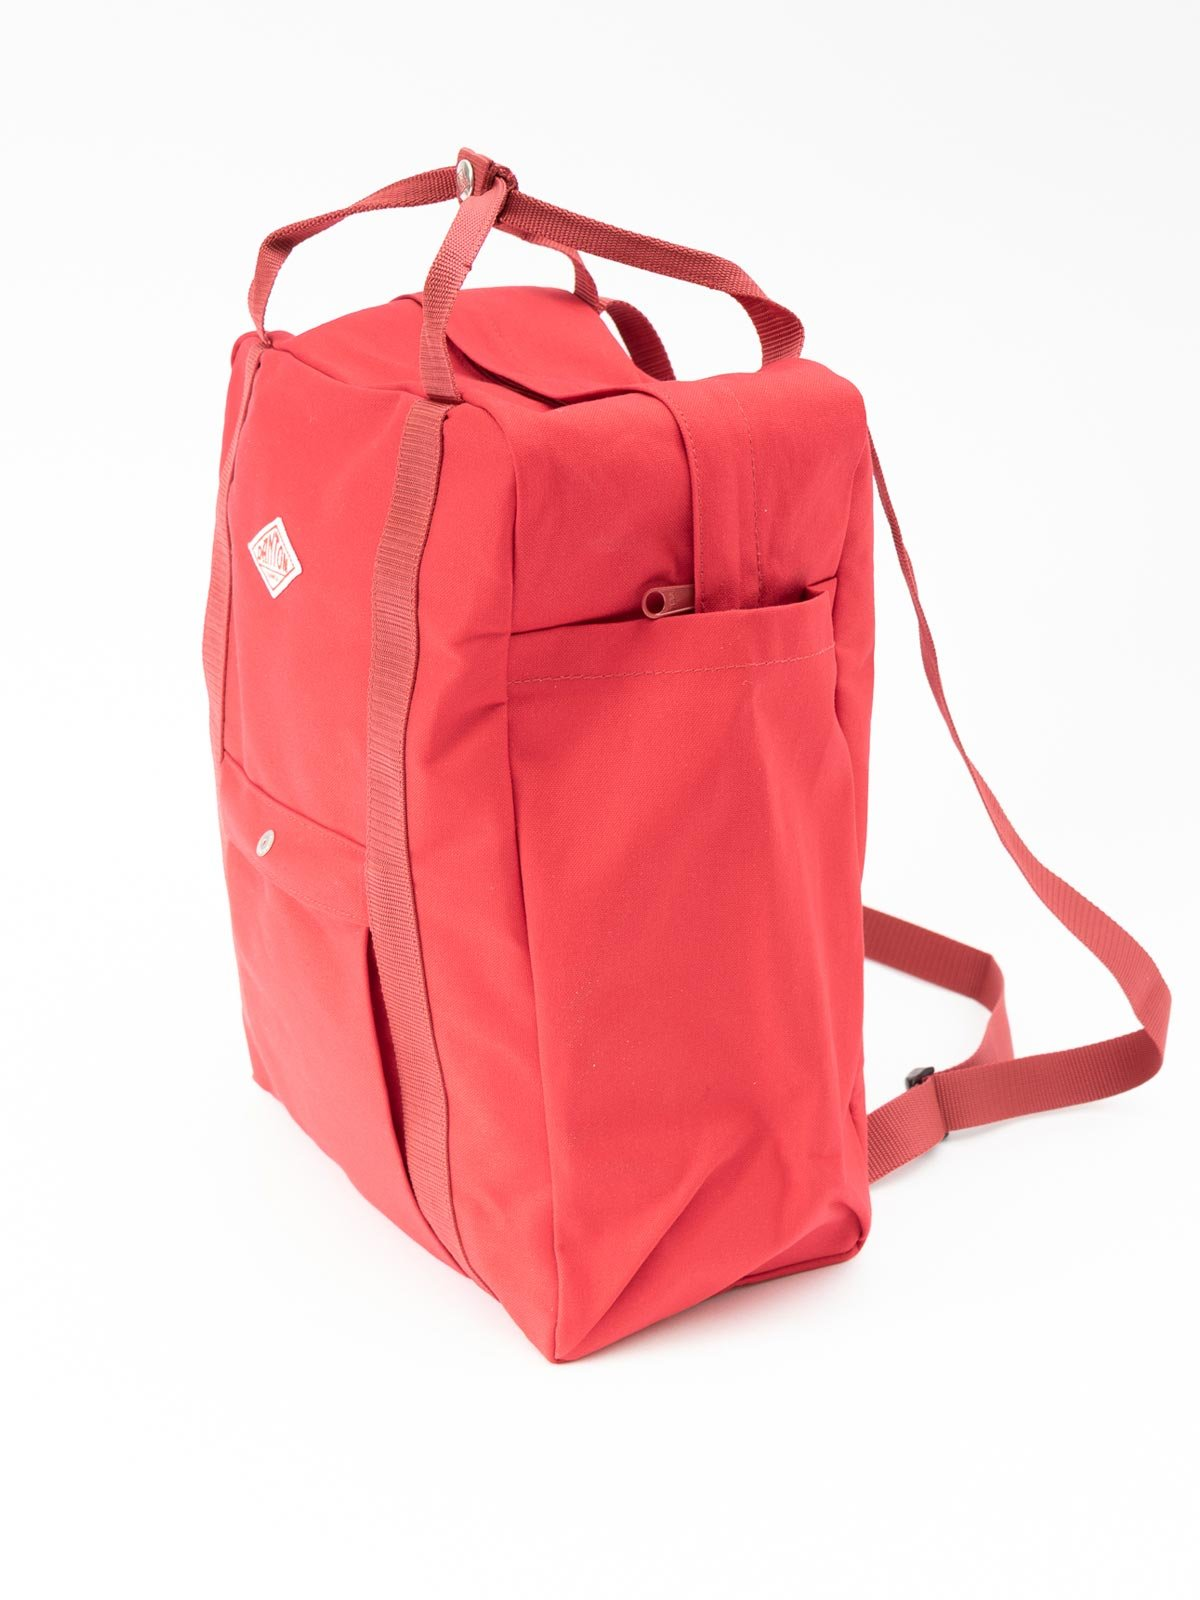 UTILITY BAG RED - Image 3